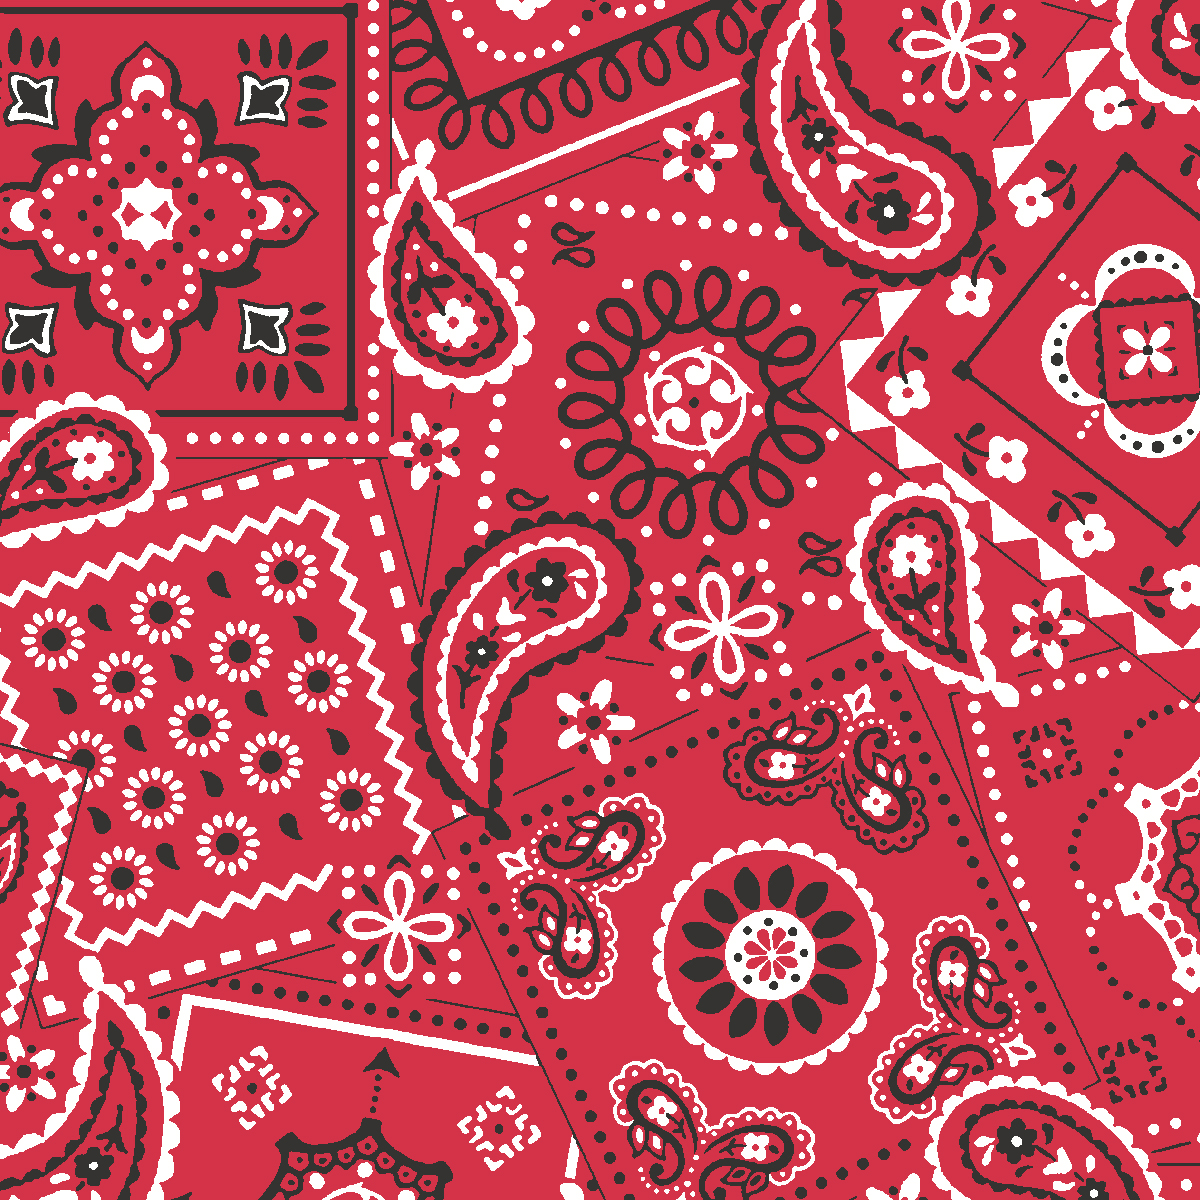 Waverly Inspirations Bandana Poppy 100% Cotton Print Fabric 44'' Wide, 140 Gsm, Quilt Crafts Cut By The Yard